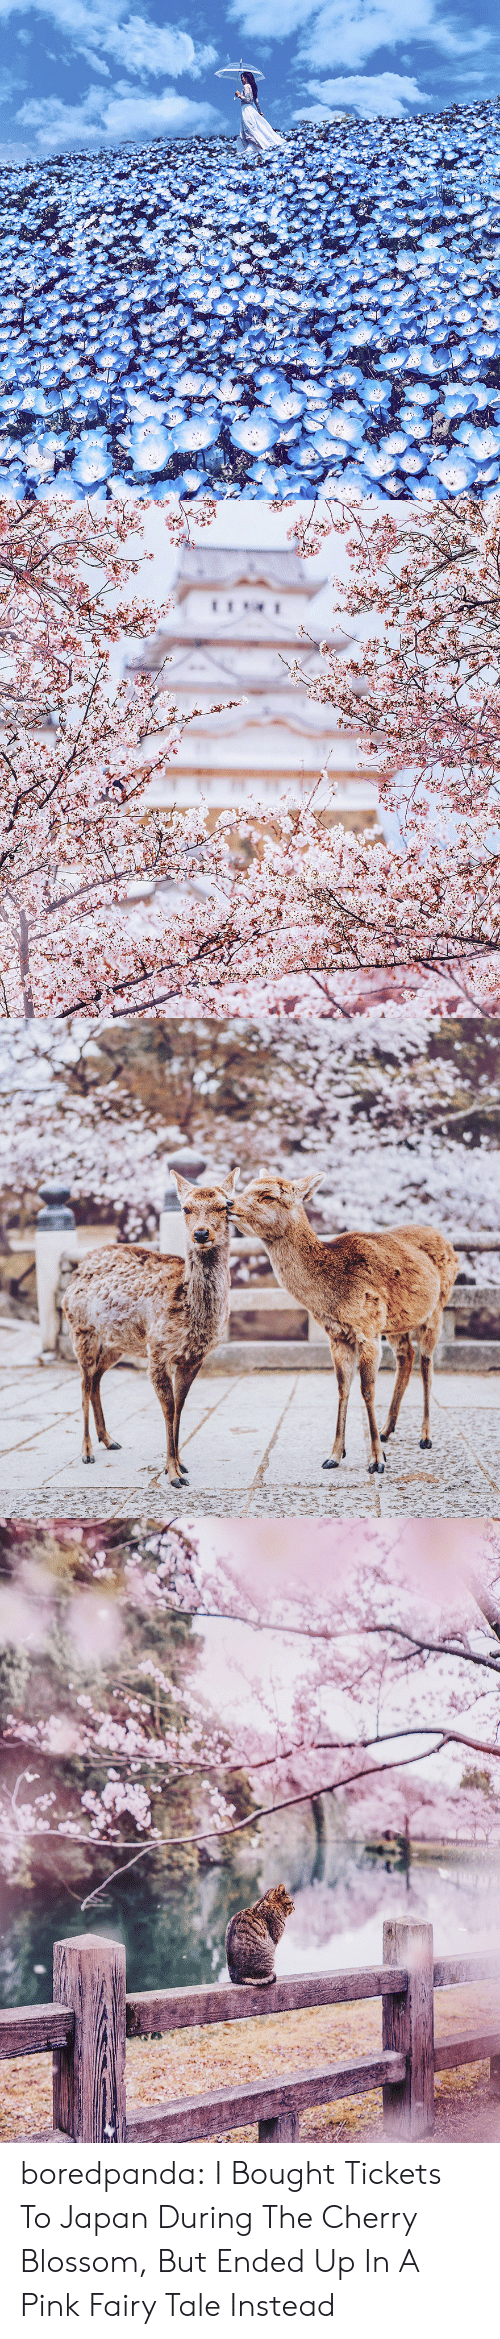 kyoto: boredpanda:    I Bought Tickets To Japan During The Cherry Blossom, But Ended Up In A Pink Fairy Tale Instead